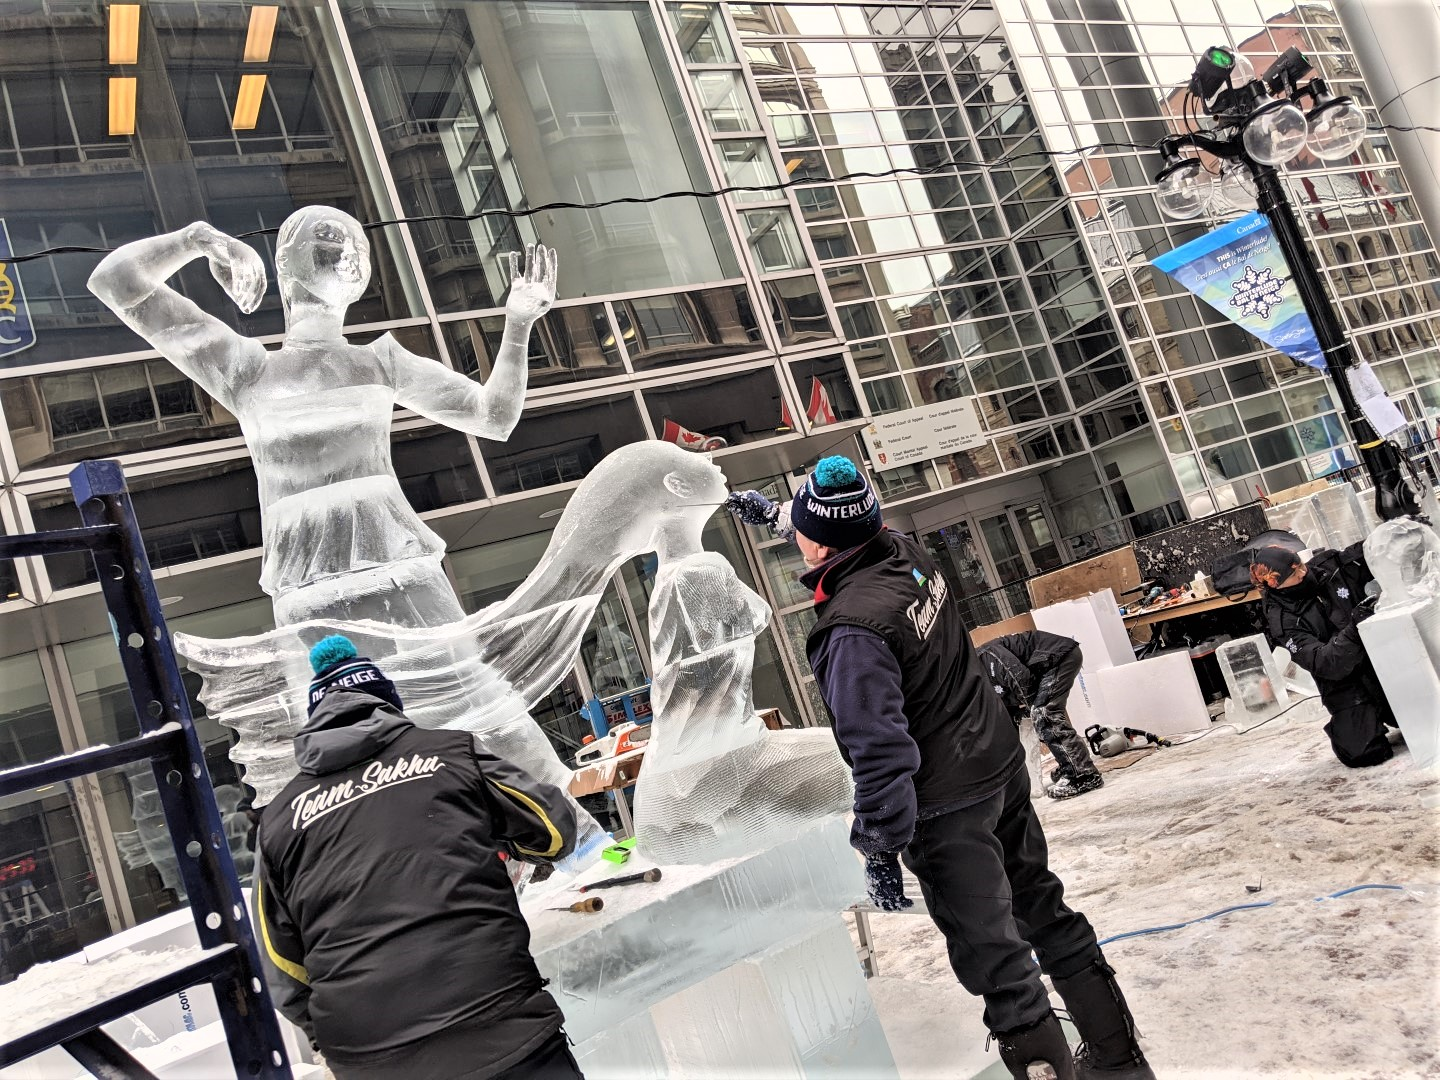 Things to do at Winterlude ice carving with kids